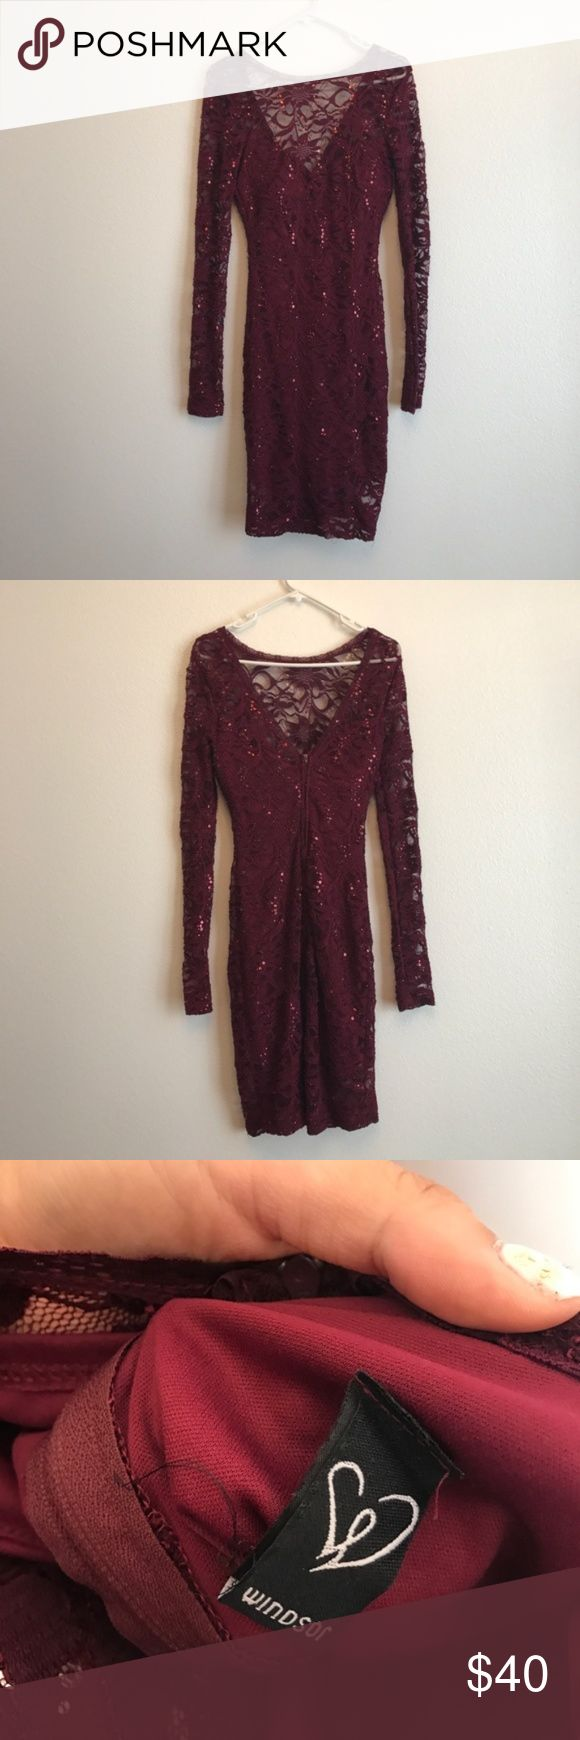 Windsor Plum Special Occasion Dress Worn once, great condition, zip back, lace sequins detailing, long sleeve, padded built in bra, double layered(dress is lined). Bust is 15.5in (it's also slightly stretchy) and length is about 36in. Size 5/6. 40% polyester, 55% Nylon, 5% Spandex. Lining 100% Polyester.  Keywords: Windsor, plum, maroon, red, dress, party, new years, wedding, fun, summer, sexy, boat neck, unique, made in USA, club dress, short dress, cocktail dress, prom dress, homecoming…